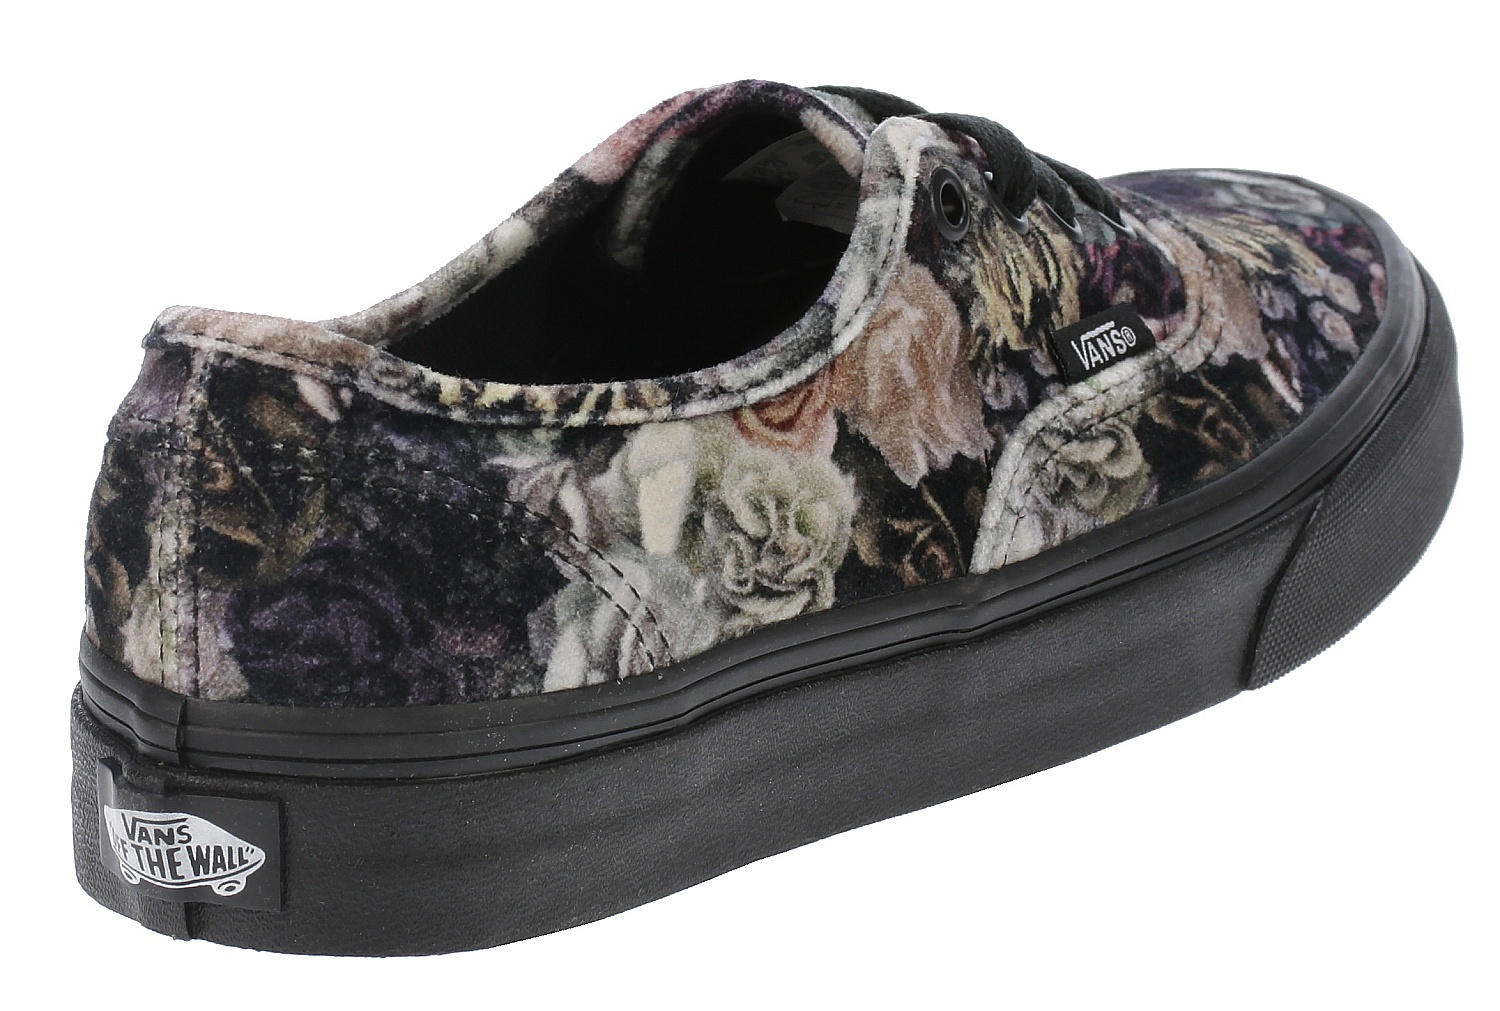 da98a65331a shoes Vans Authentic - Velvet Floral Black - Snowboard shop ...